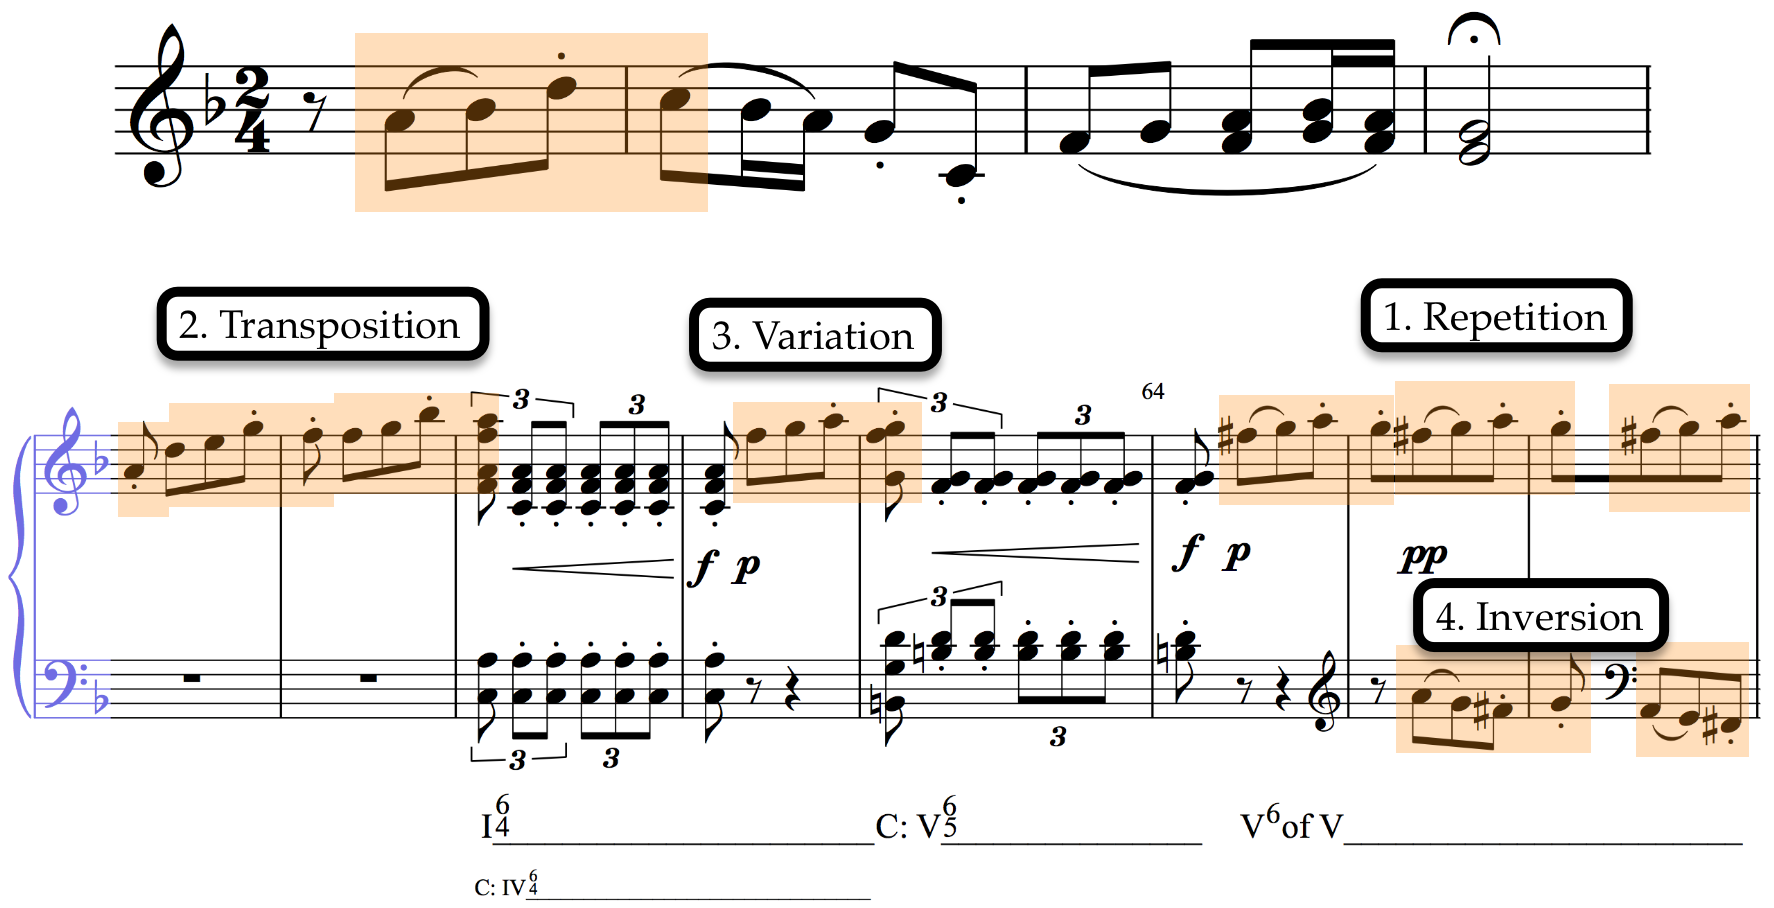 Motivic development in Beethoven's 6th Symphony